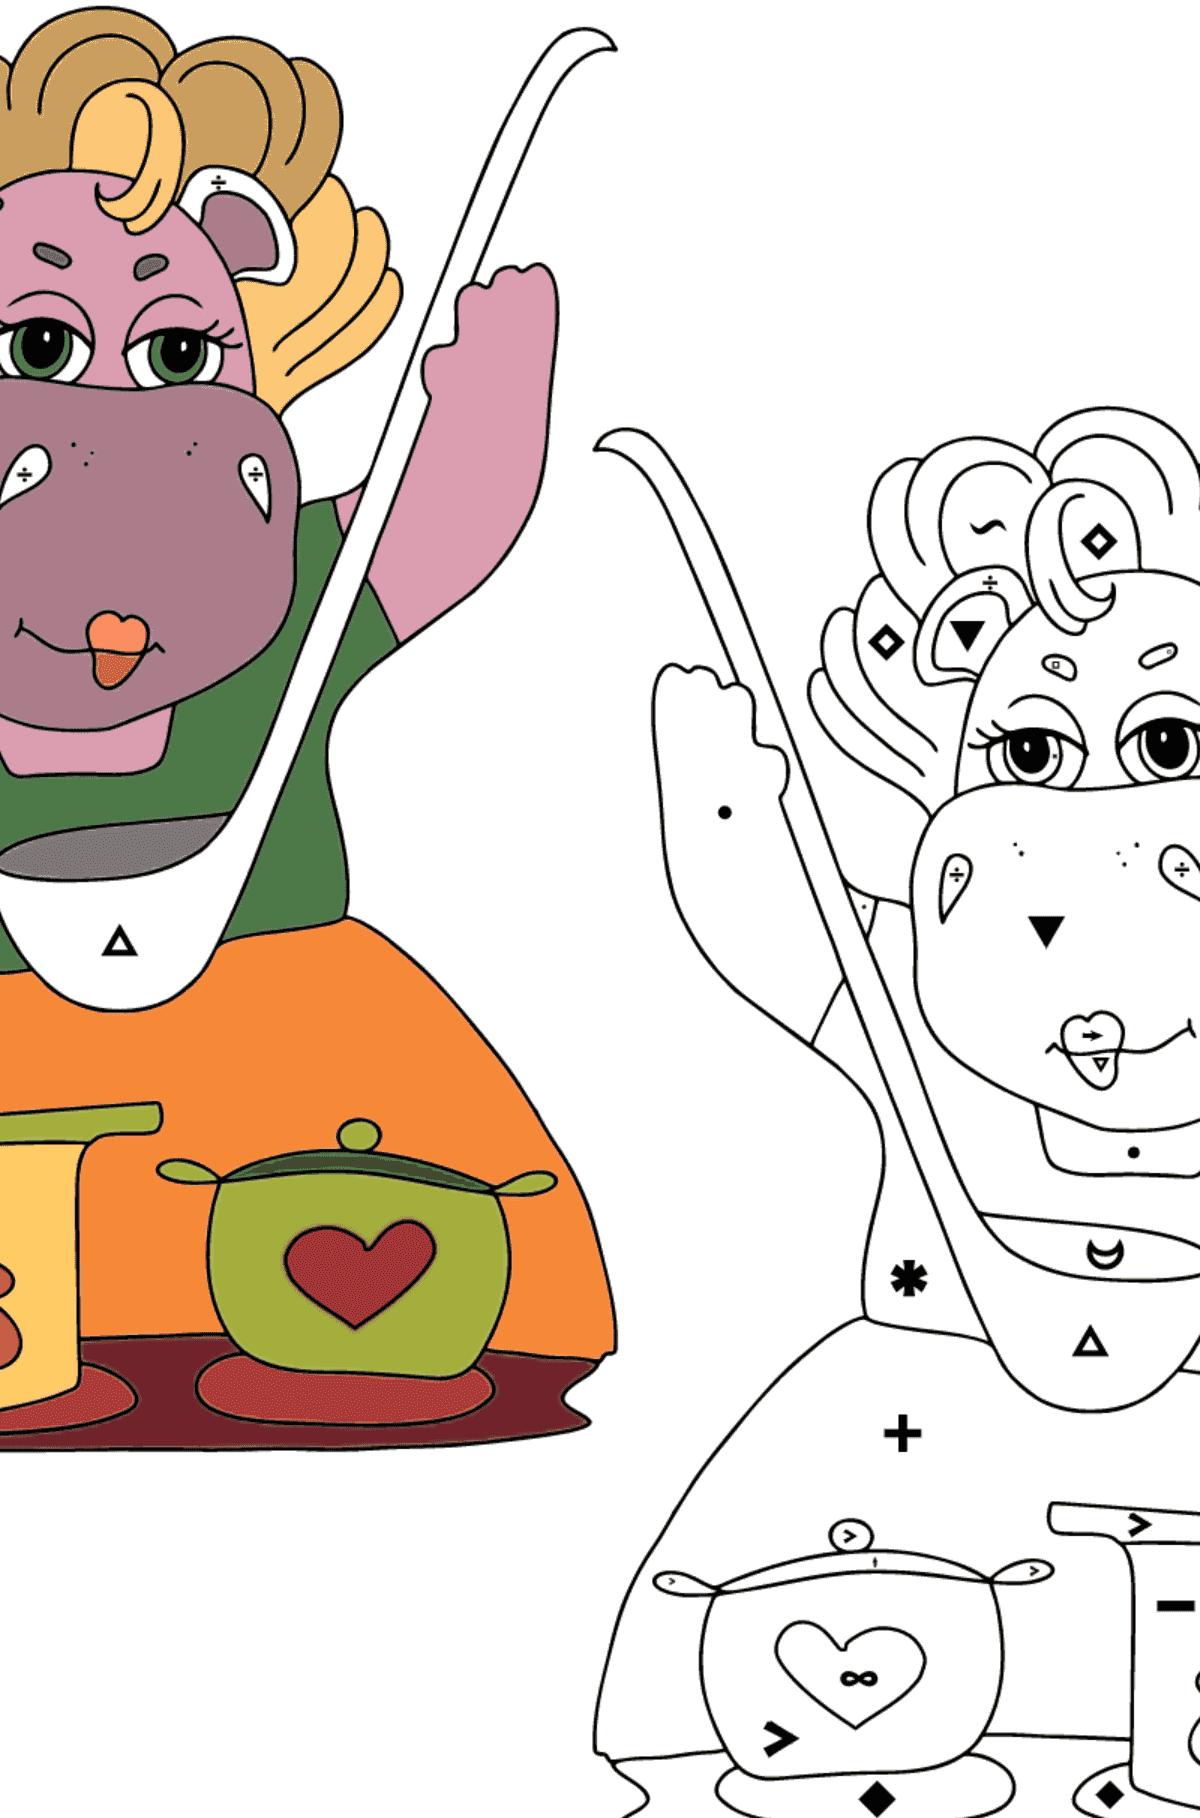 Coloring Page - Hippos are Cooking a Delicious Lunch for Children  - Color by Special Symbols